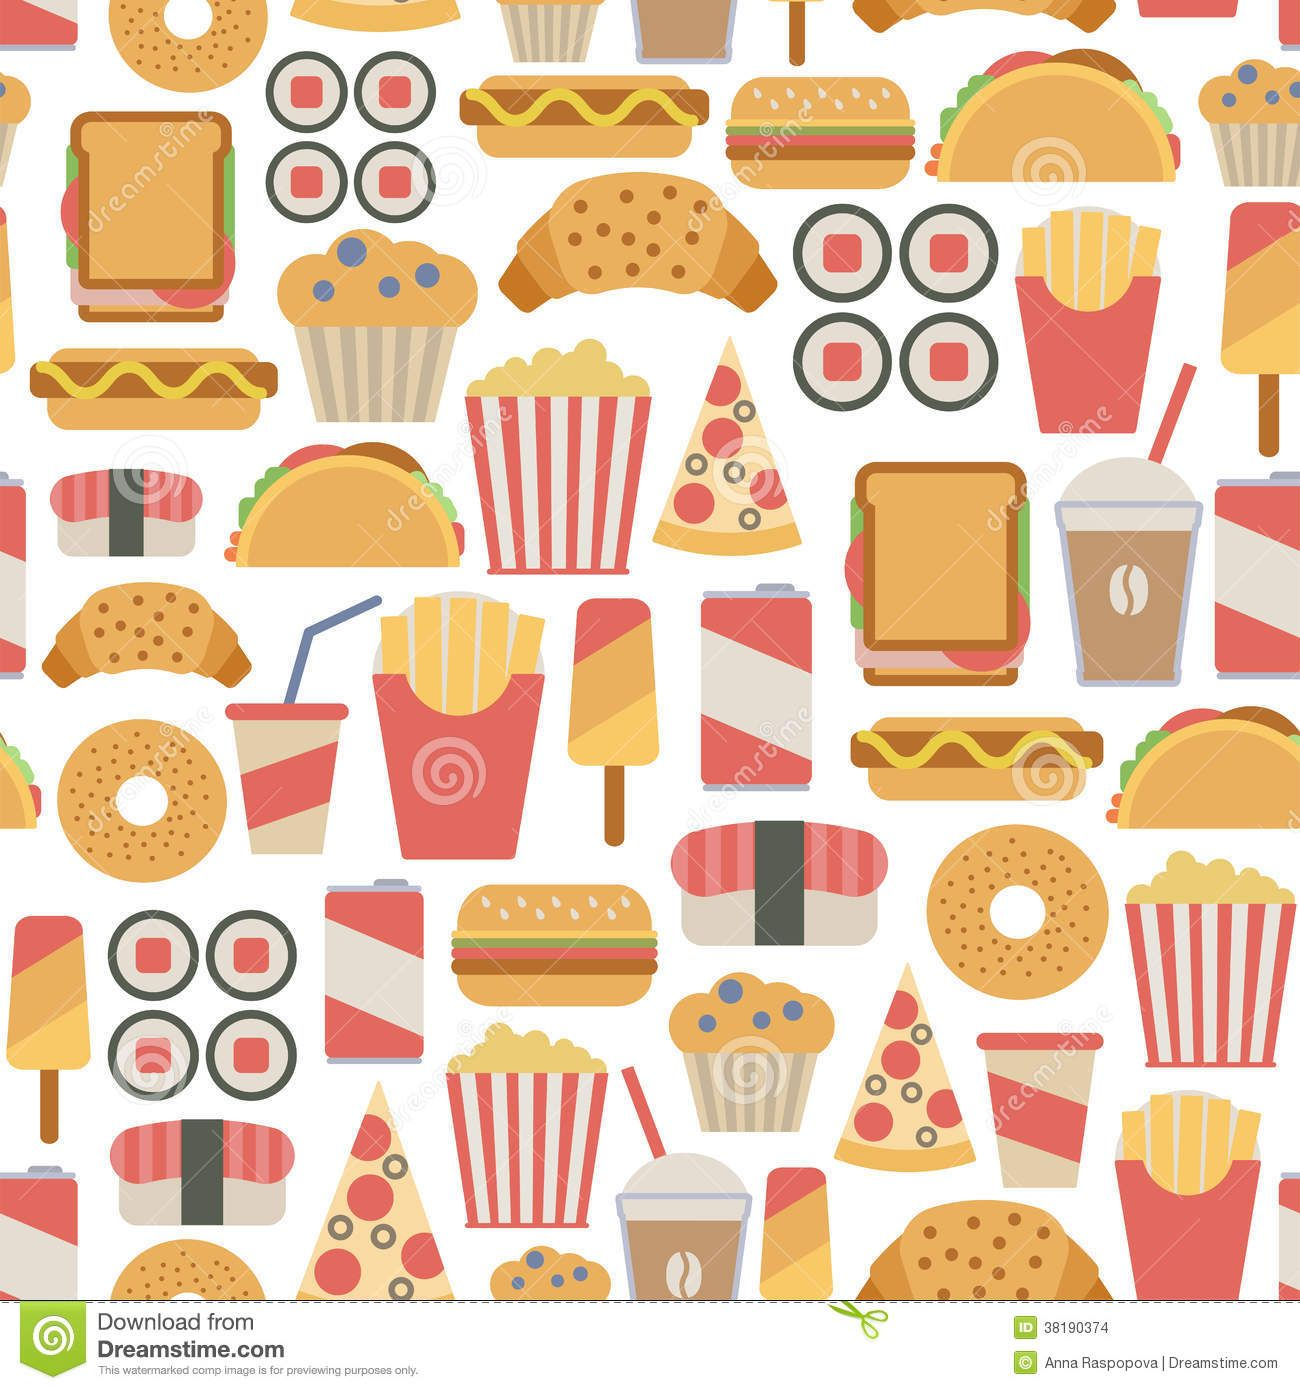 food pattern Google Search Food patterns, Food icons